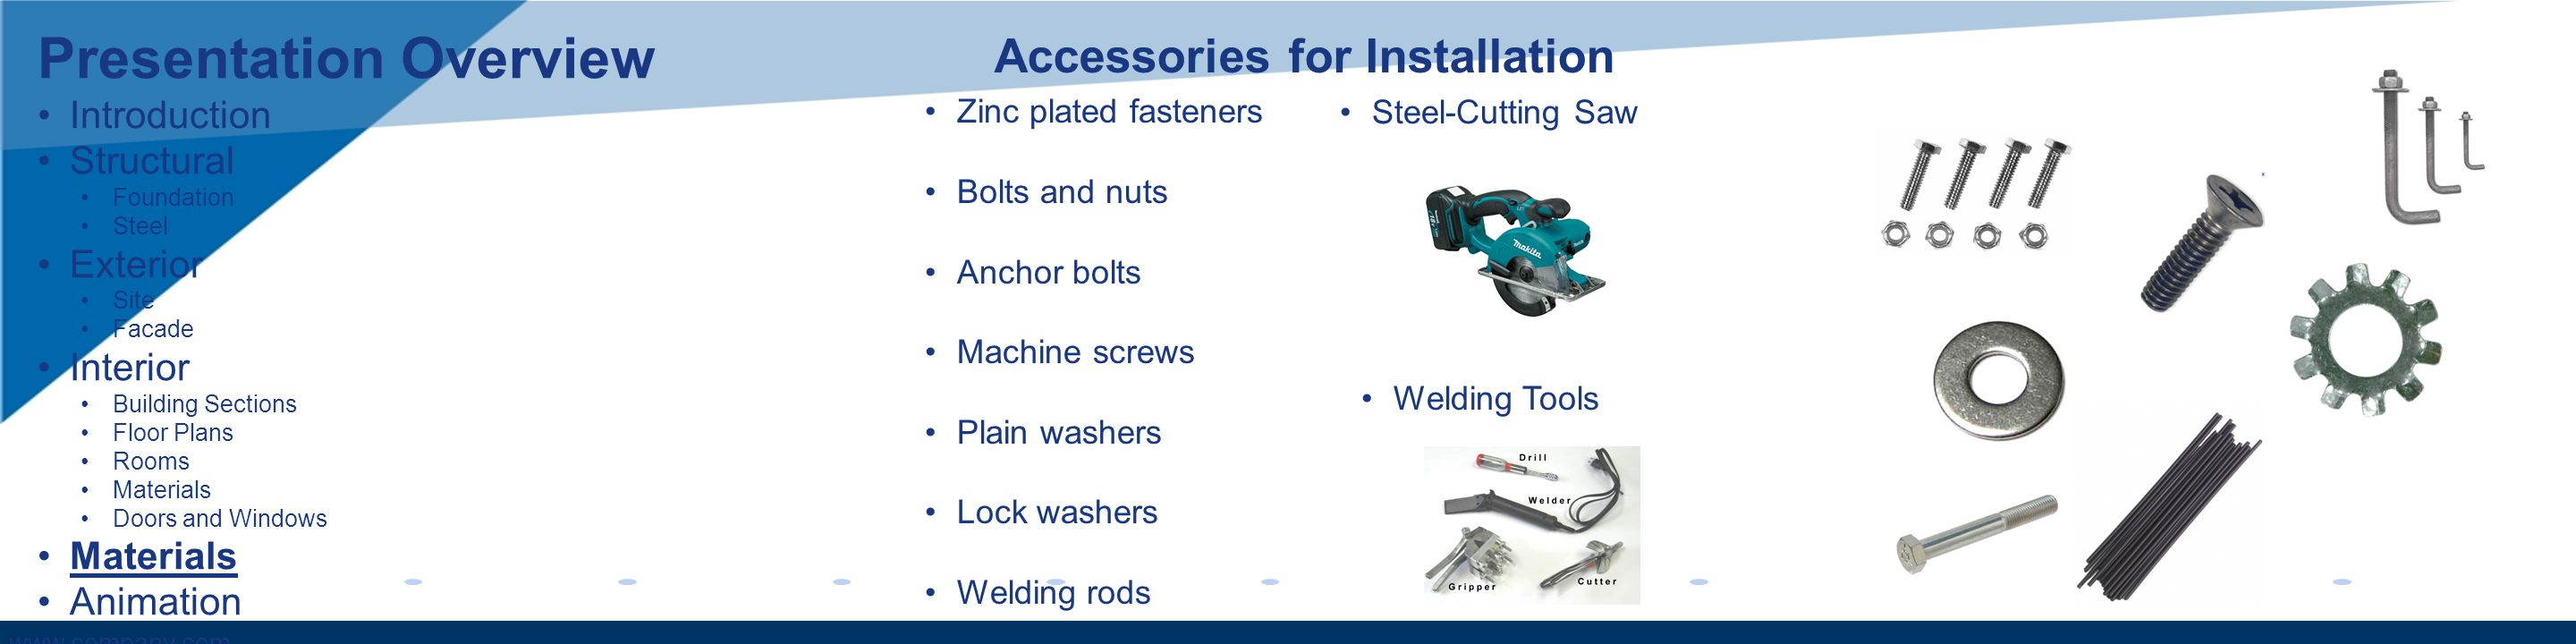 www.company.com Zinc plated fasteners Bolts and nuts Anchor bolts Machine screws Plain washers Lock washers Welding rods Accessories for Installation